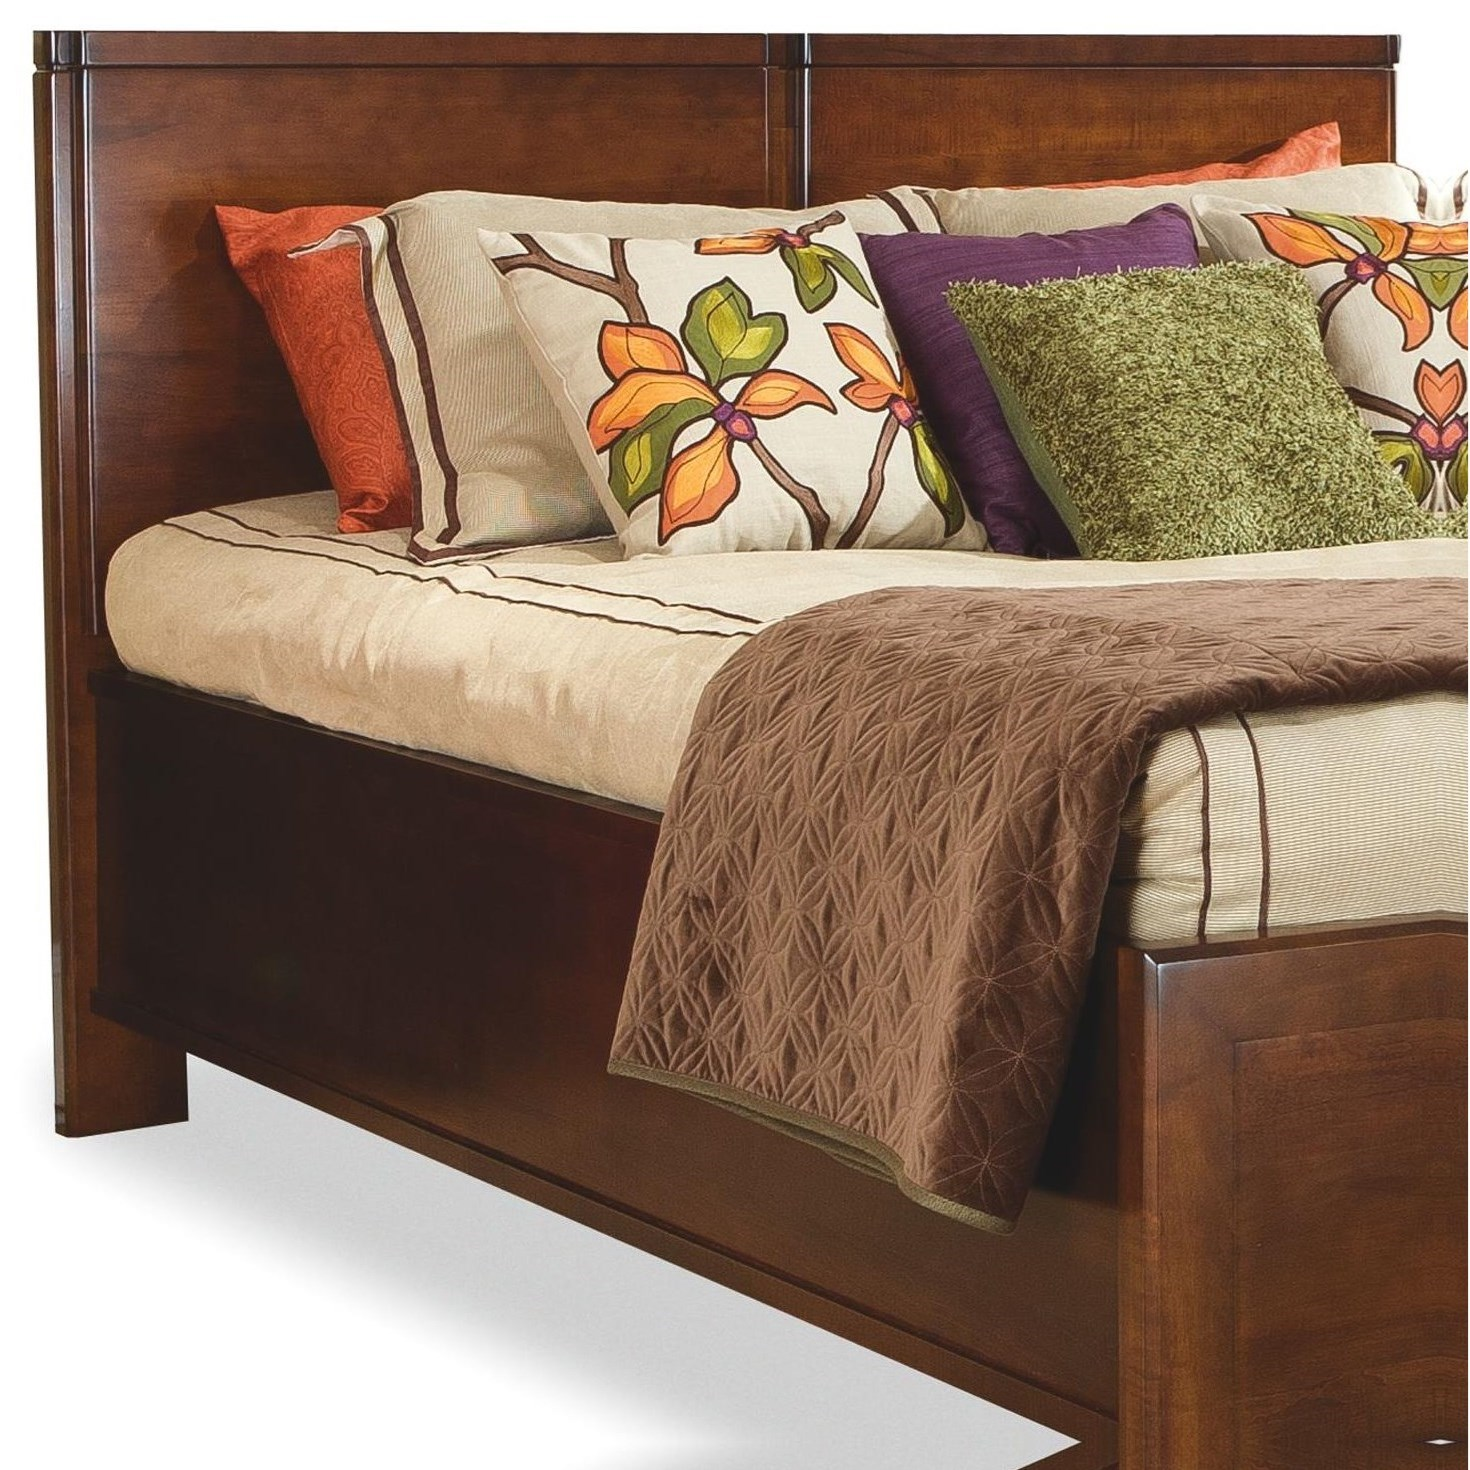 Beds Queen Wood Panel Headboard by perfectbalance by Durham Furniture at Stoney Creek Furniture